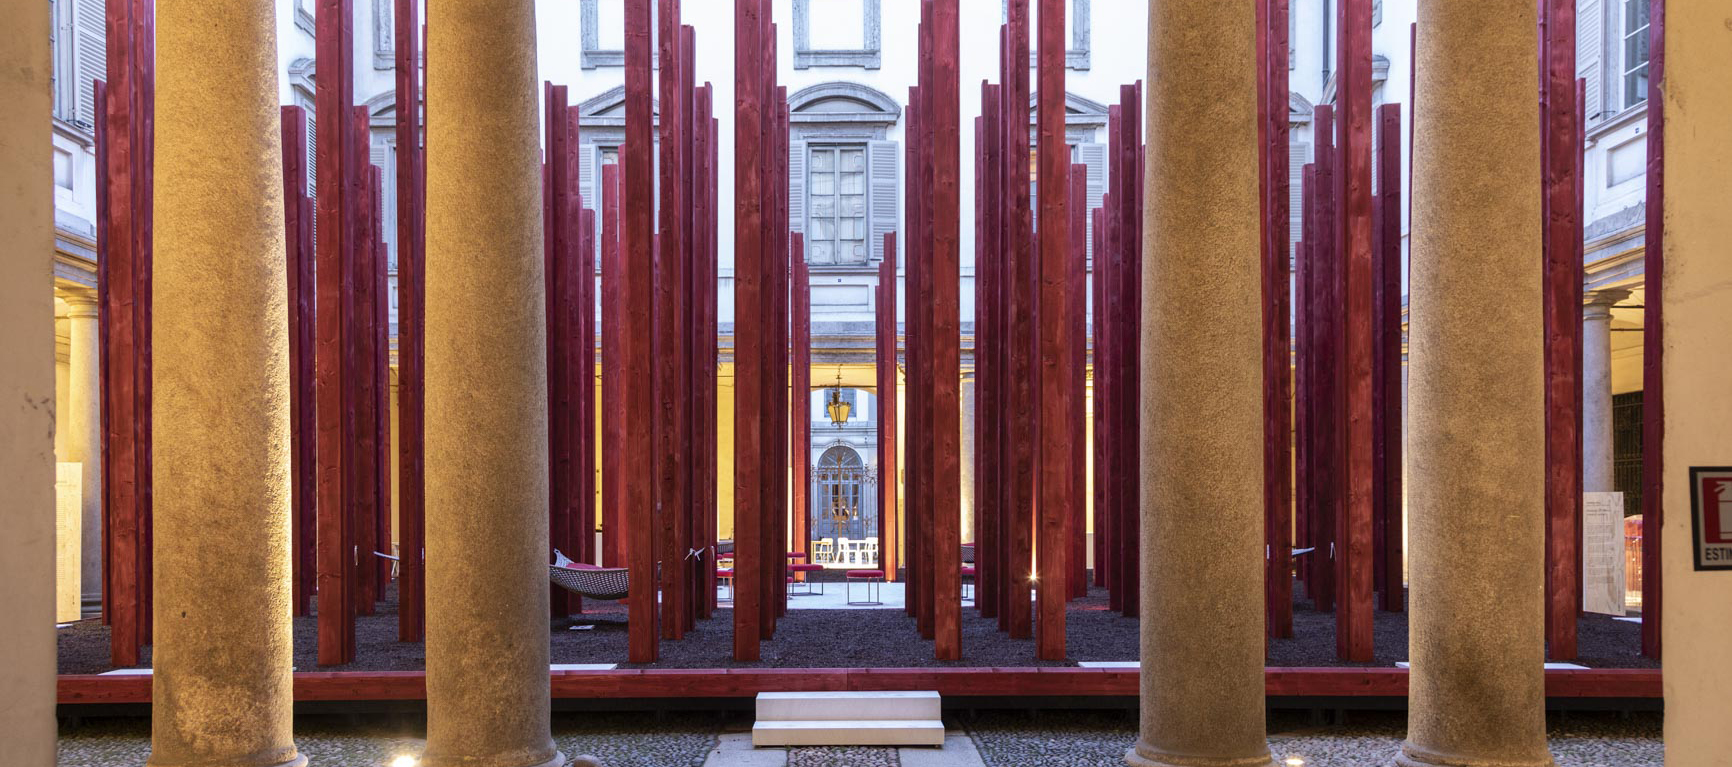 Tempietto nel Bosco by Asif Khan. Photograph by Ruy Teixeira. Image courtesy of Mosca Partners